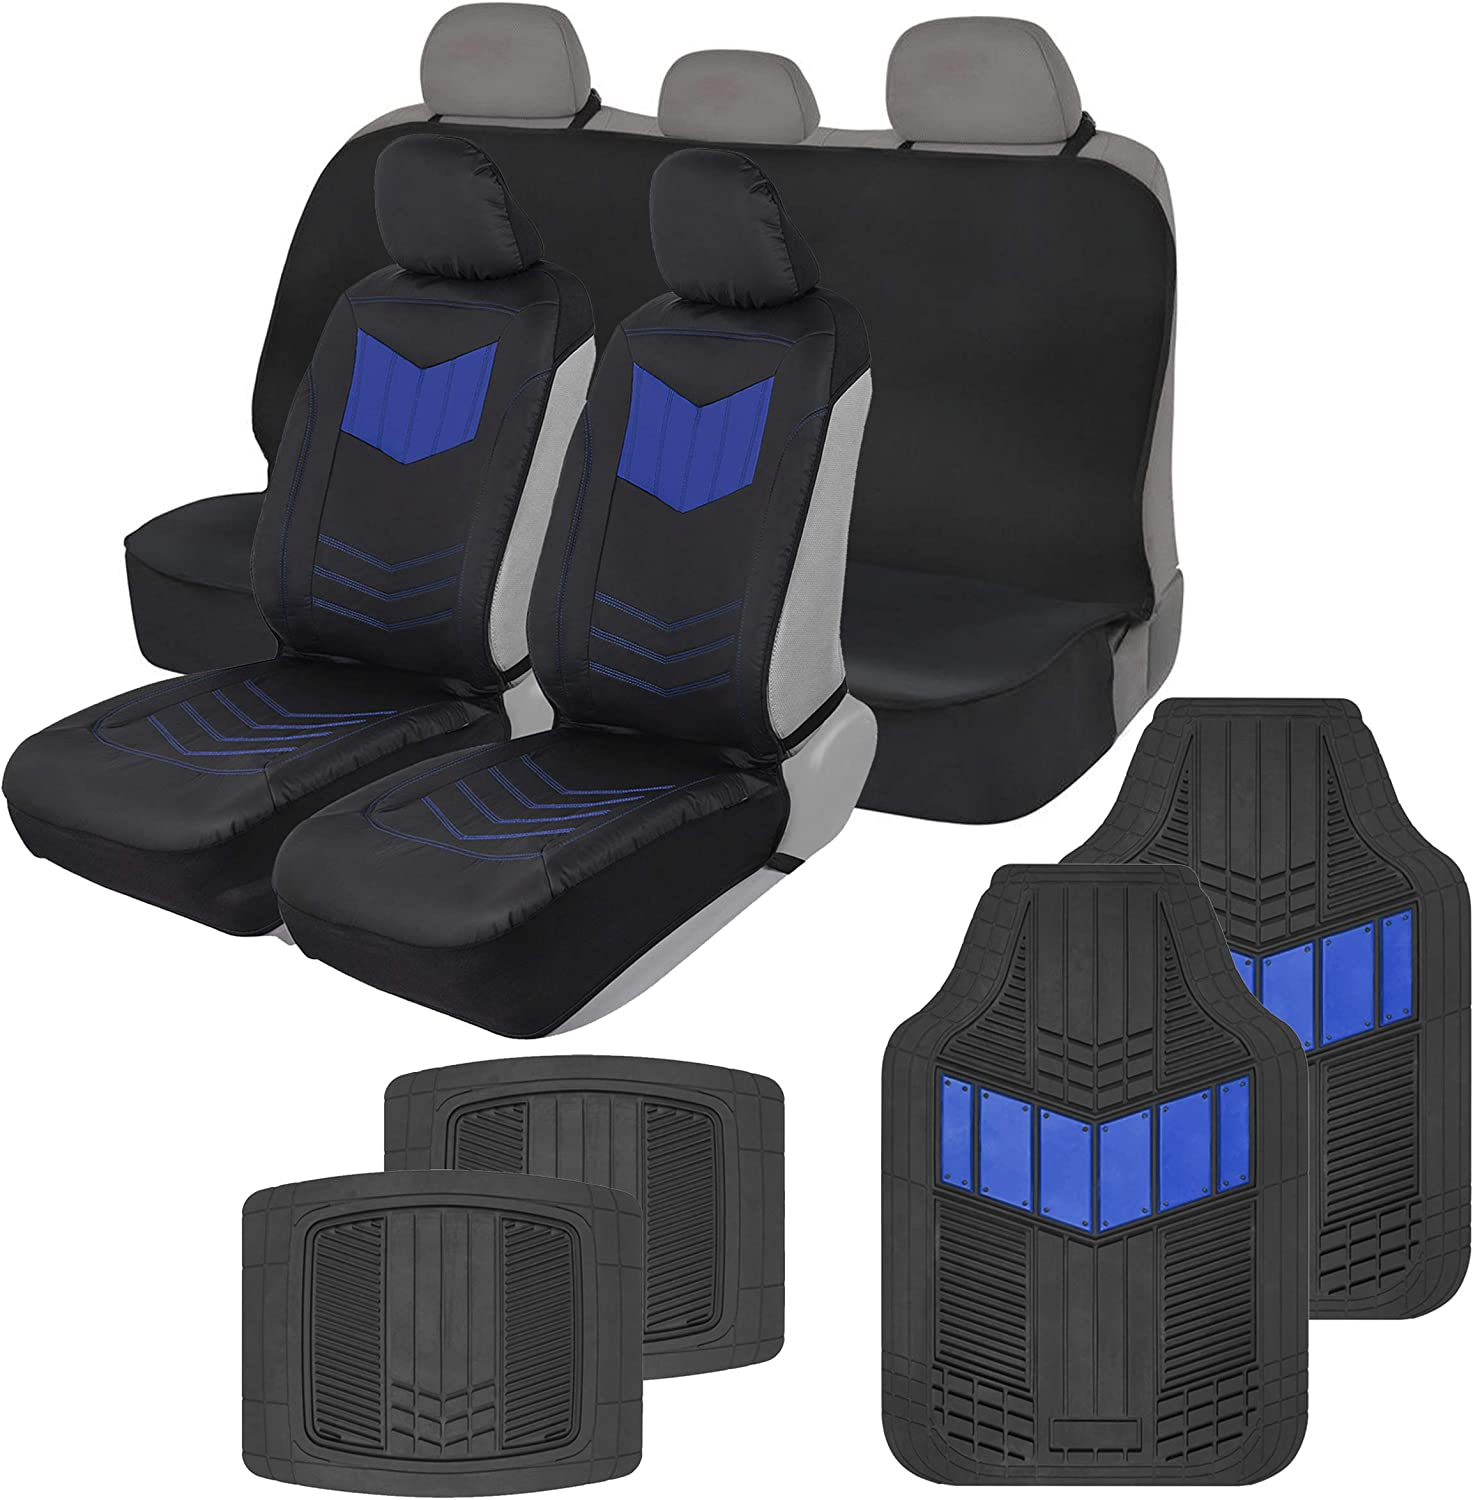 Motor Trend COMBO304 Blue ComfortPlush Vegan Leather Sideless (Front 2pc) Waterproof Bench Seat Cover (Rear 1pc) & Heavy-Duty Floor 4pc Mat Car Auto (Sedan Truck SUV Minivan) Full Set Combo